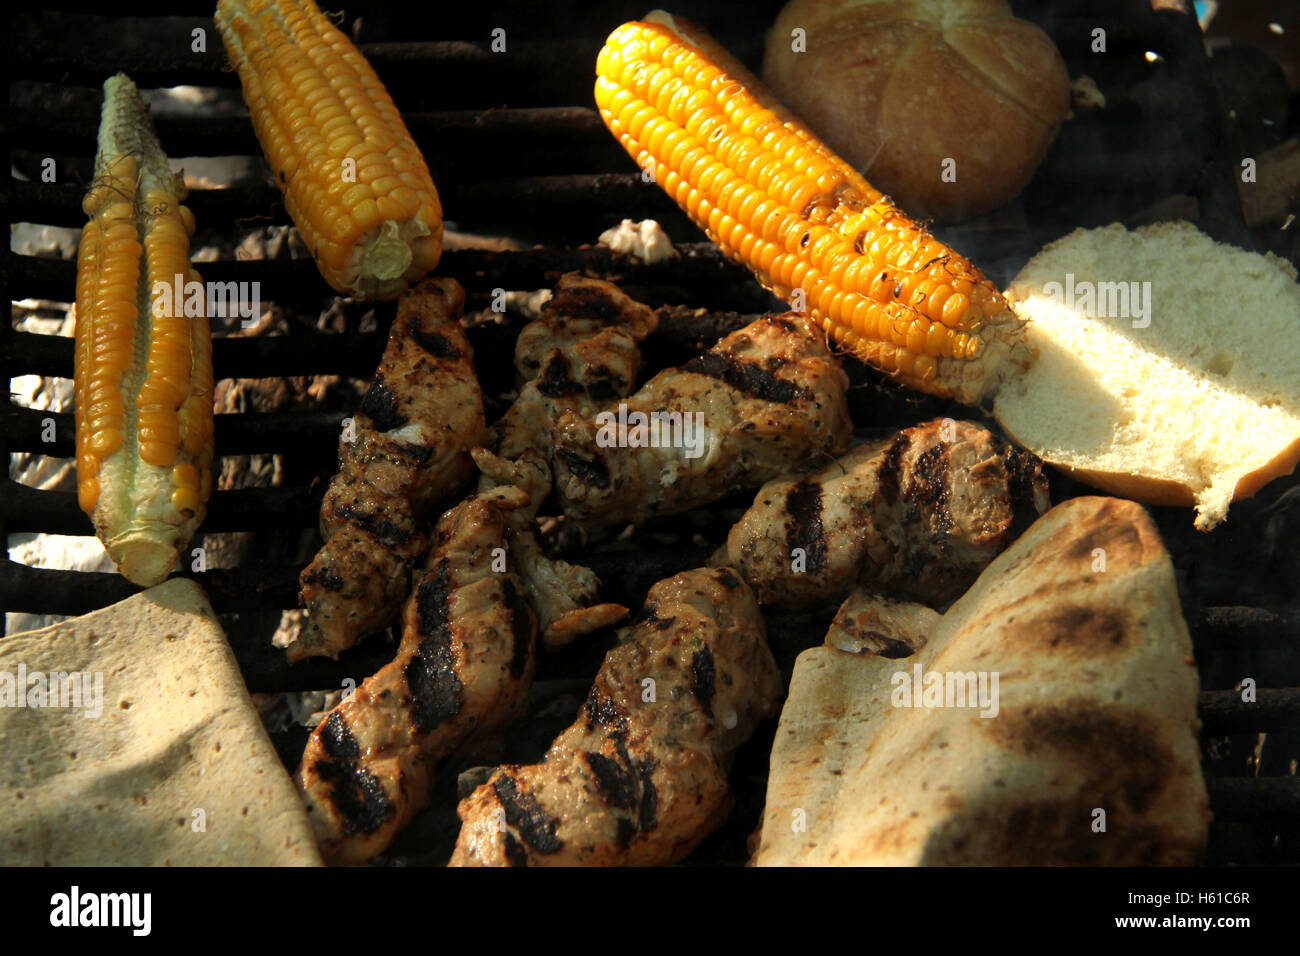 Grilling meat, bread, and corn at outdoor camping - Stock Image